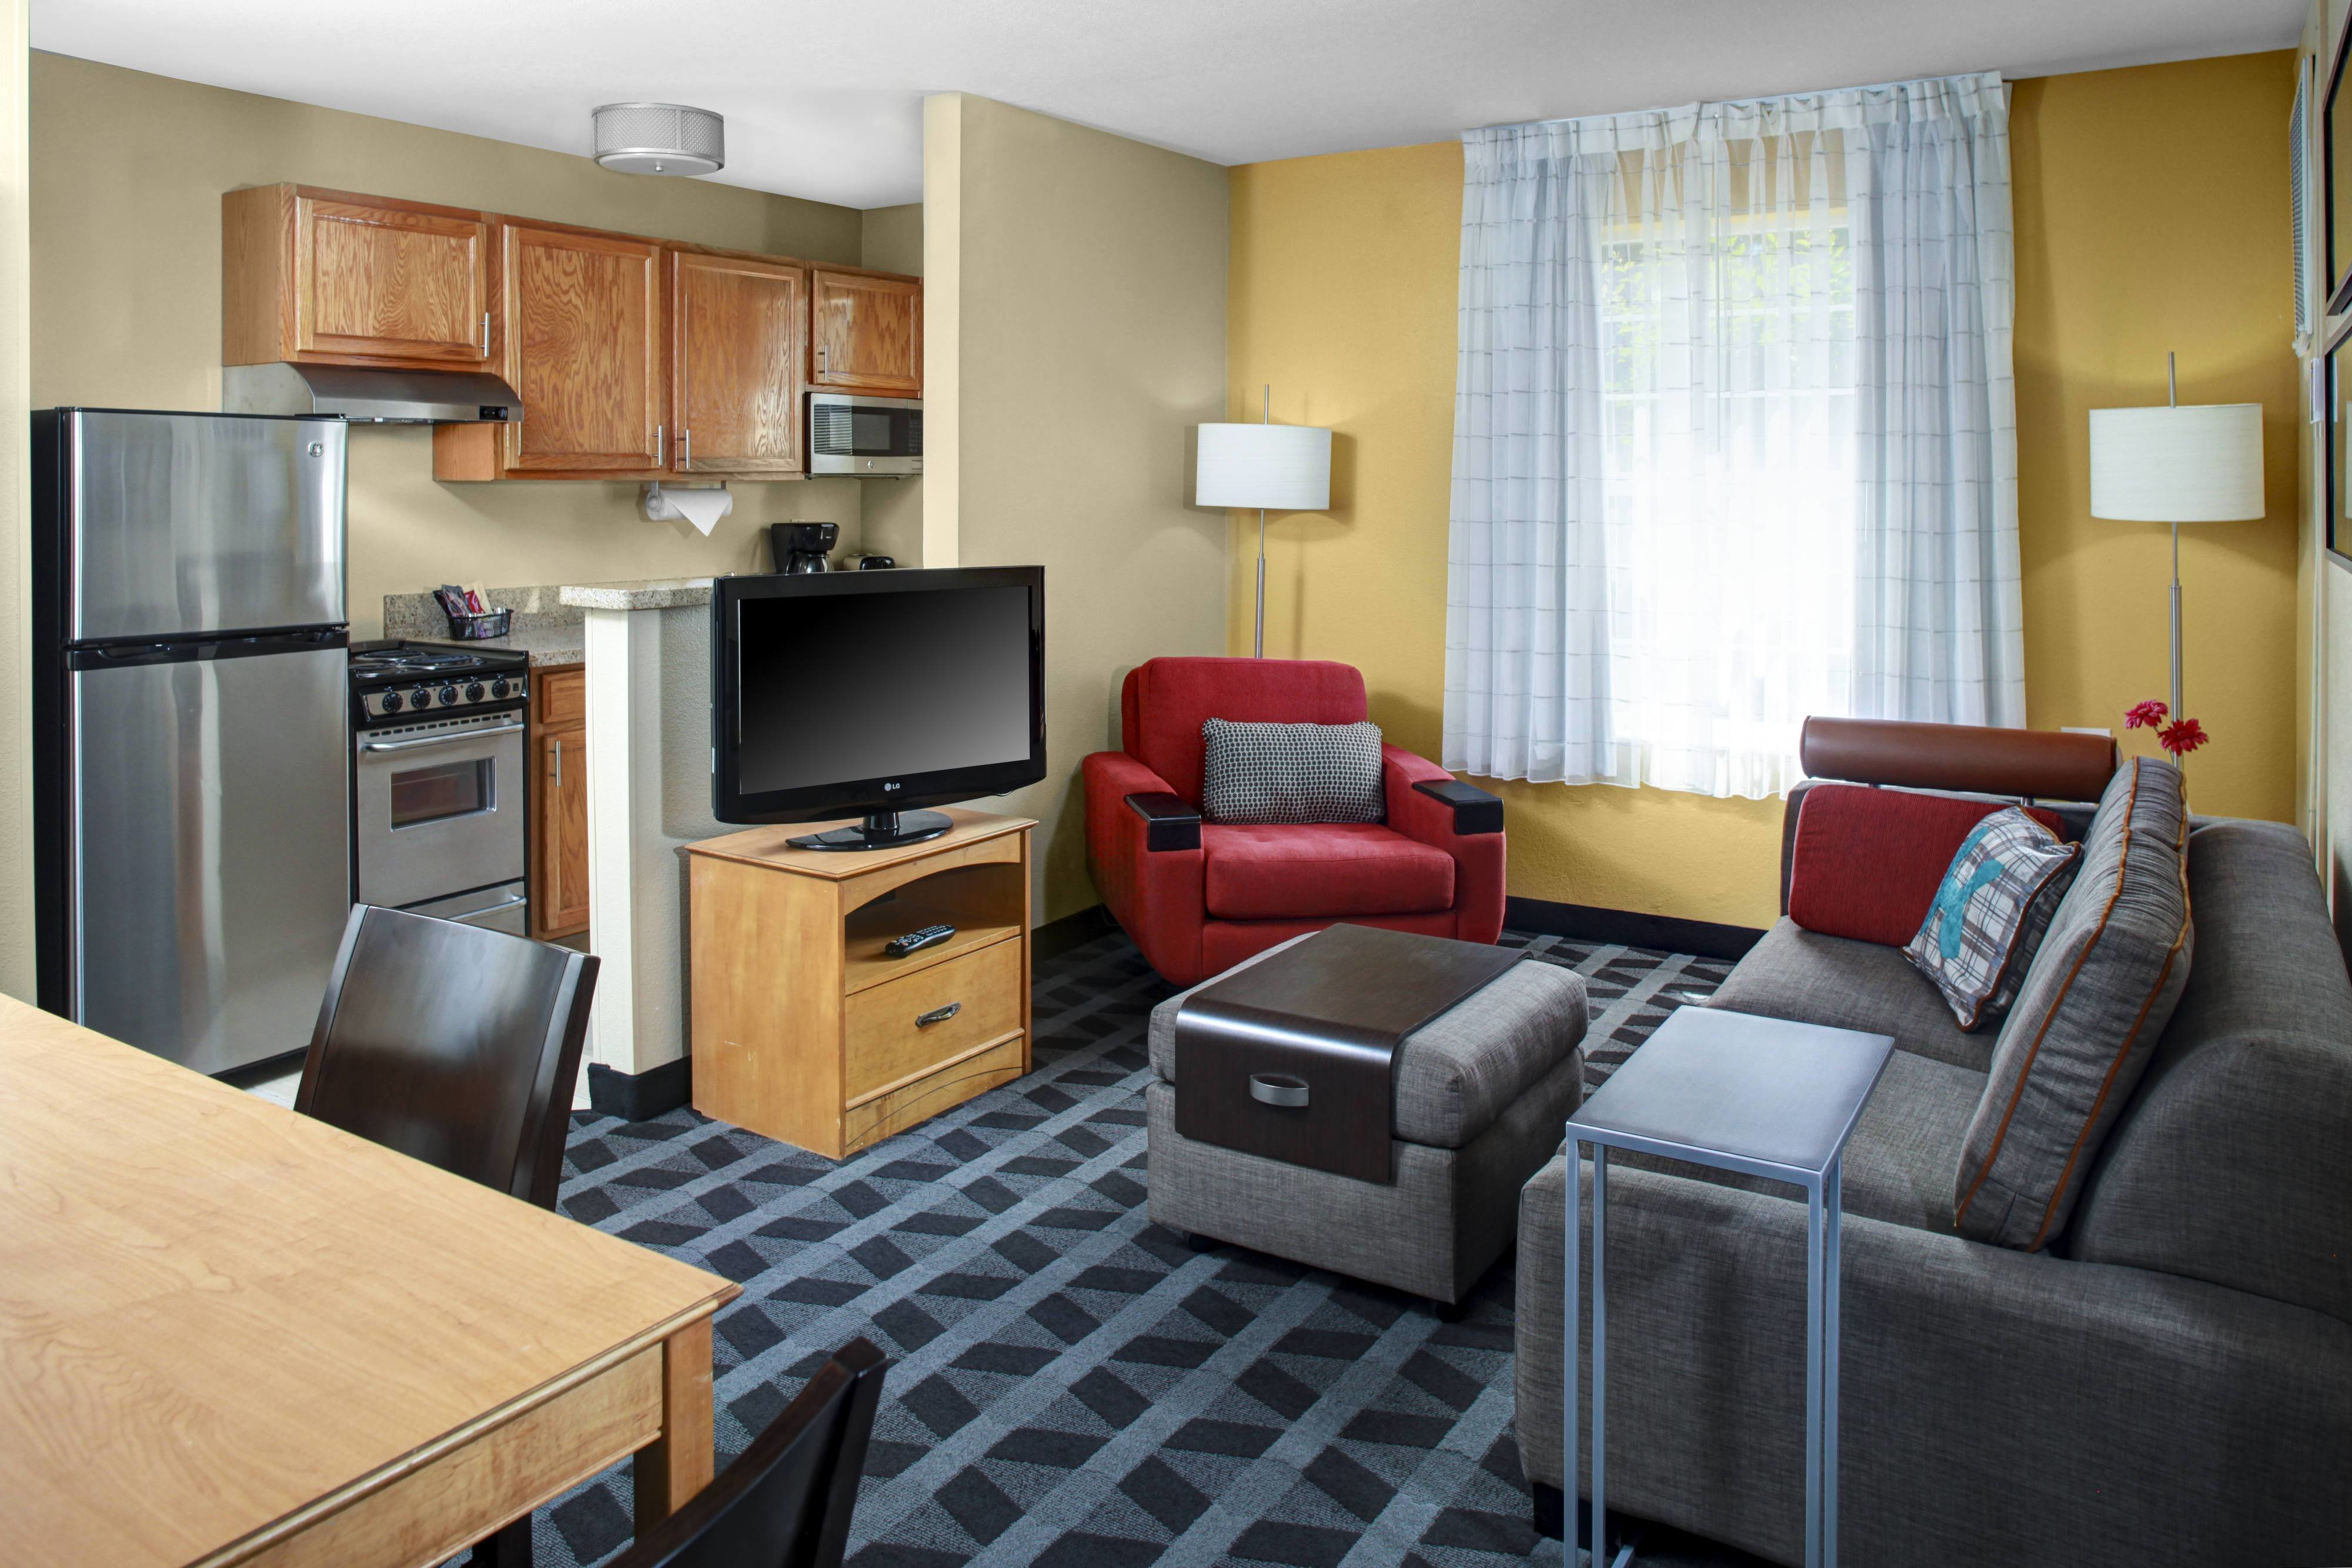 Best Extended Stay Hotel In Fresno California Towneplace Suites With Pictures